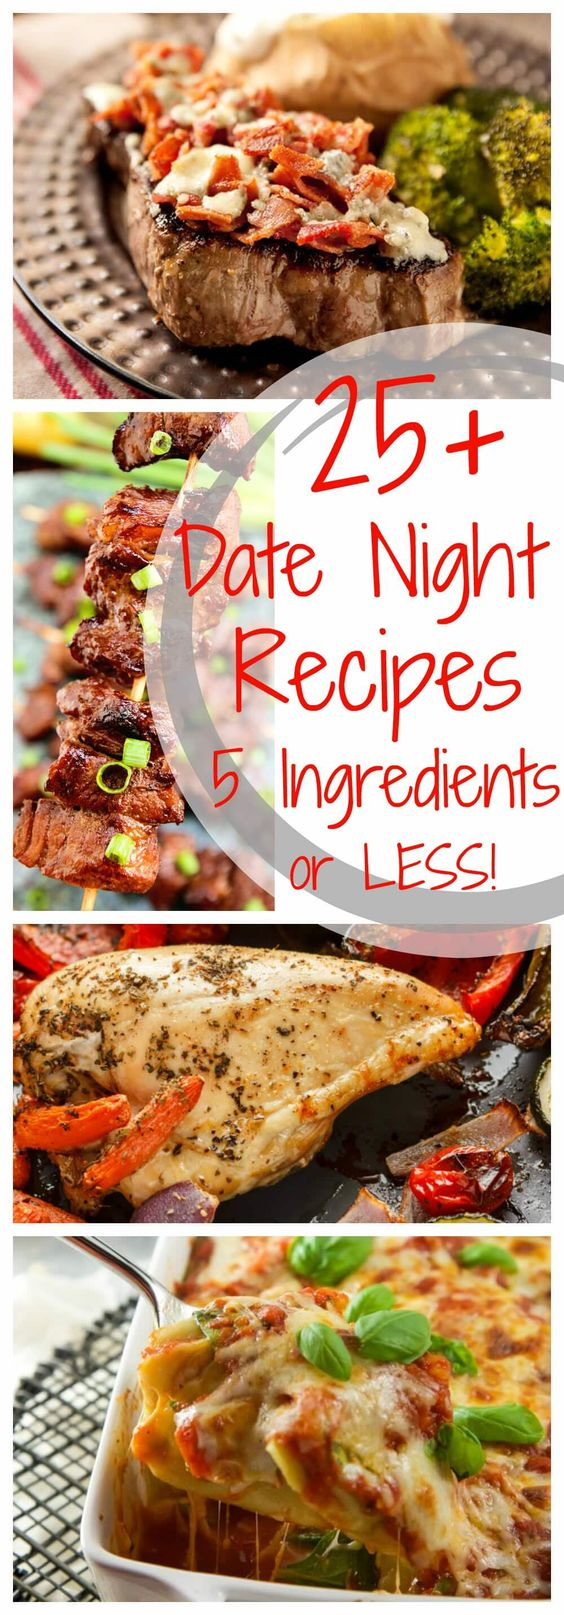 Date Night Recipe: Homemade Pizza | What She Makes